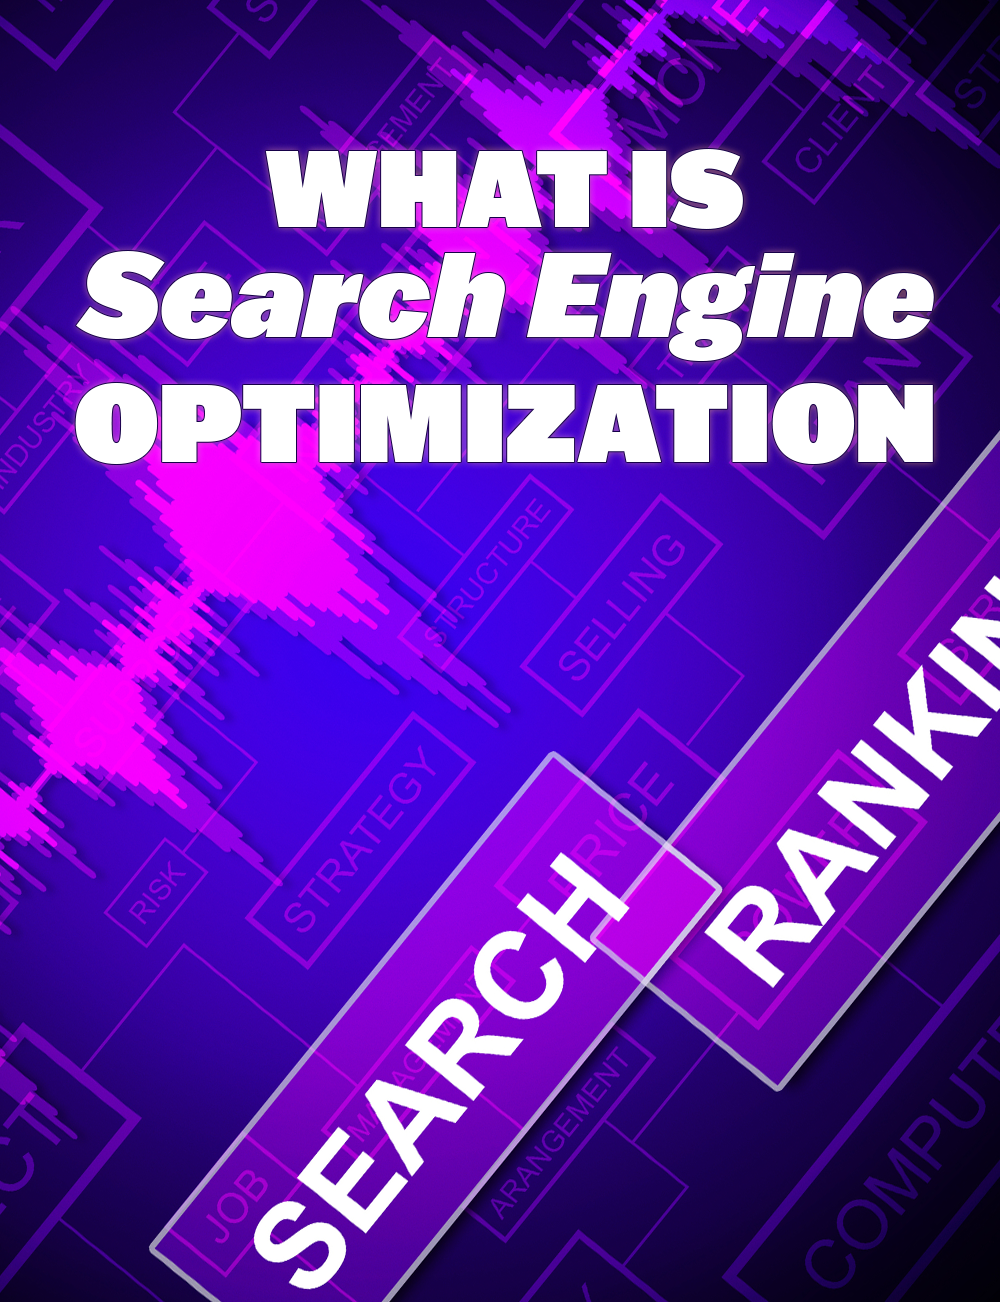 What Is Search Engine Optimization And How Can You Implement It?'s Ebook Image